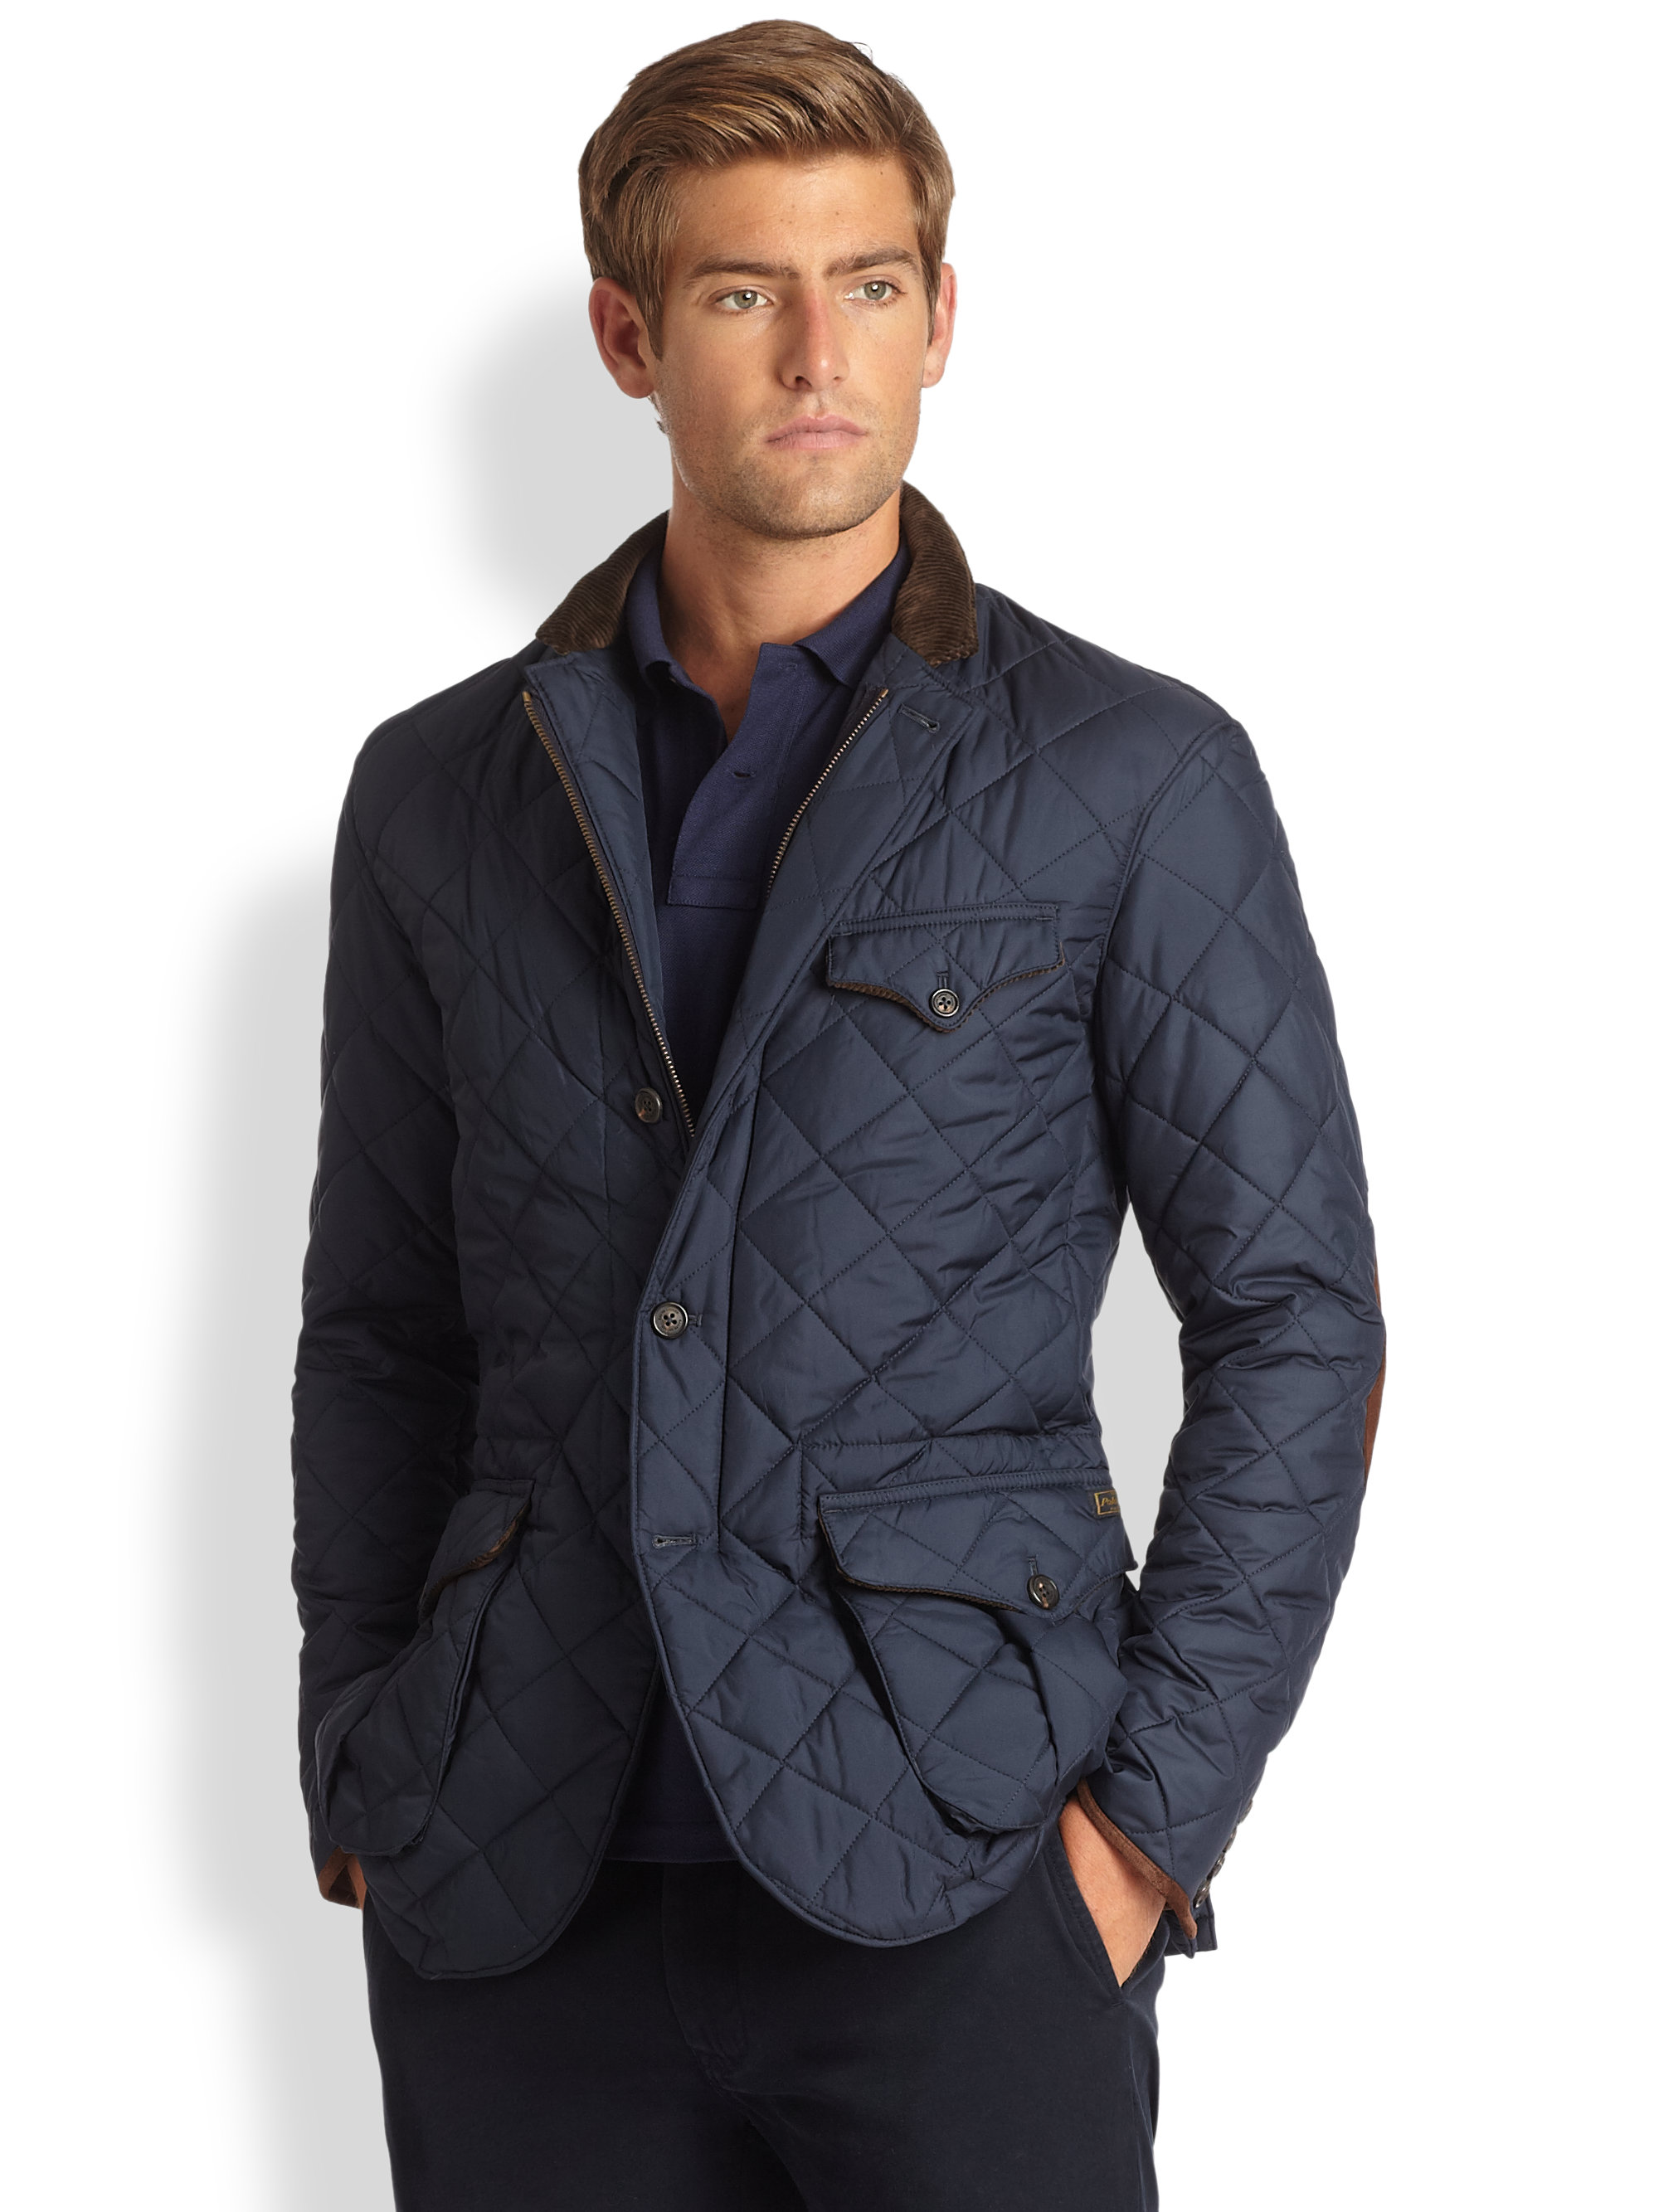 polo ralph lauren quilted sportcoat in blue for men lyst. Black Bedroom Furniture Sets. Home Design Ideas